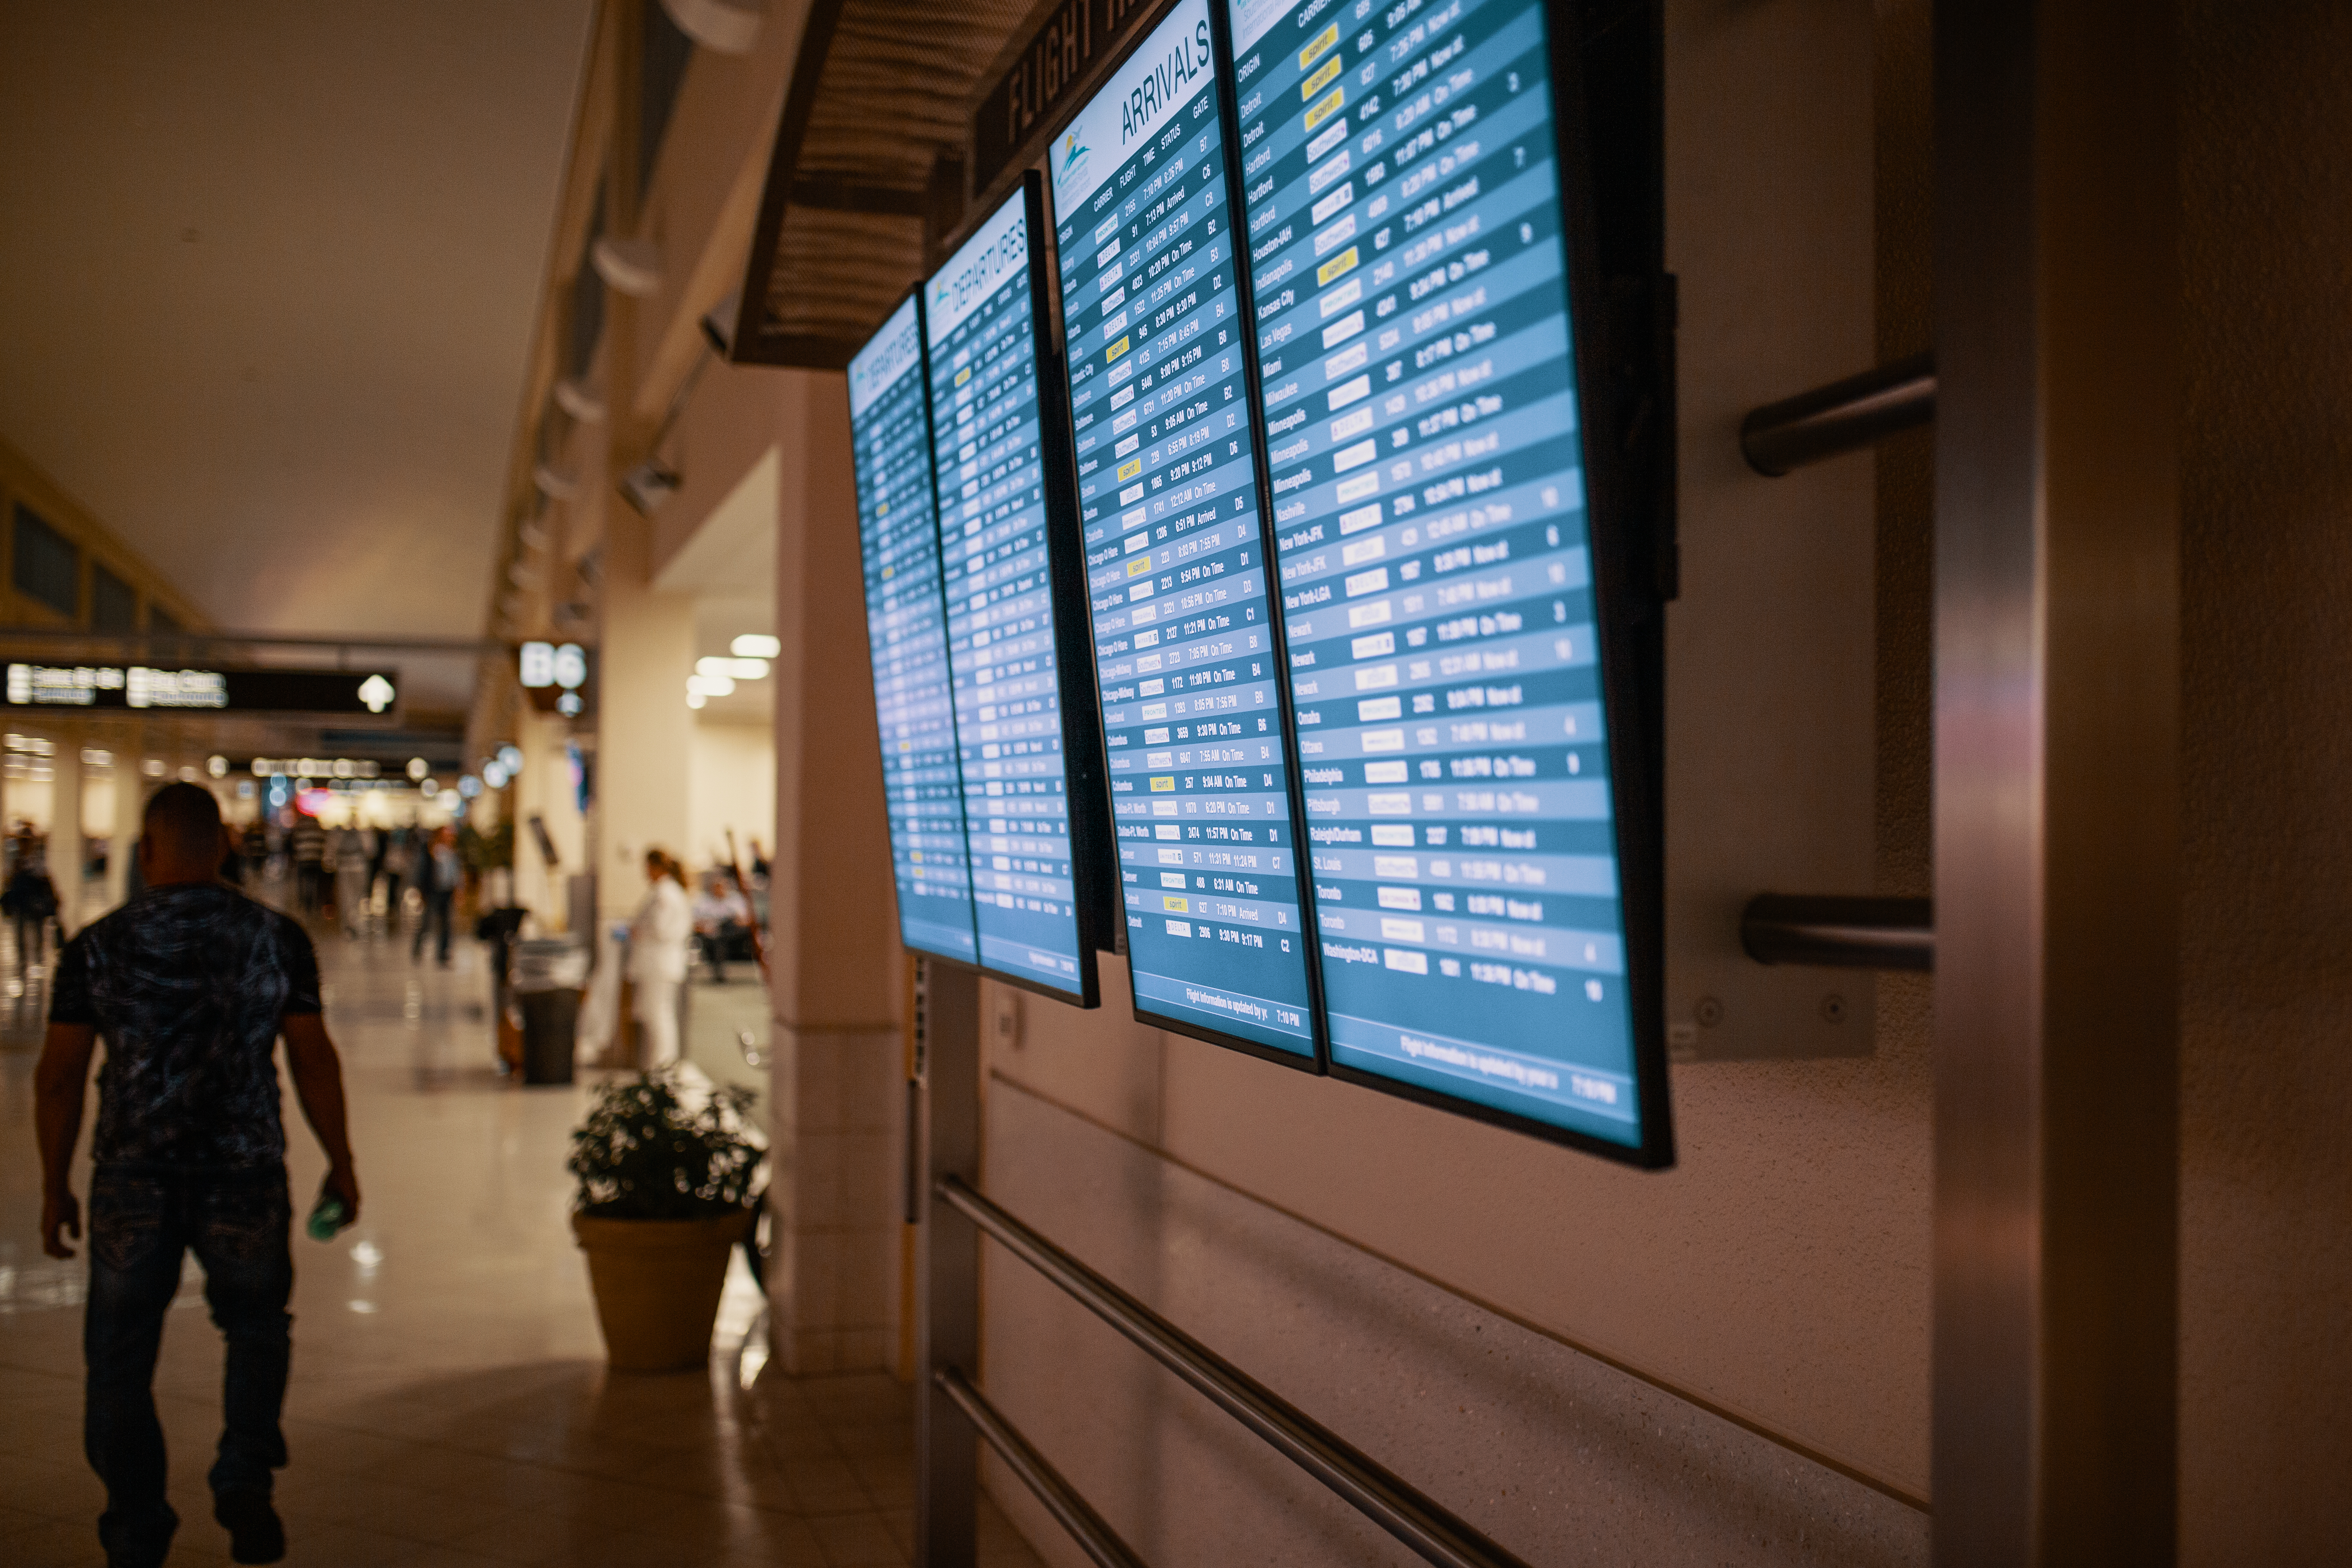 Airline Flight Schedules on Flat screen Televisions